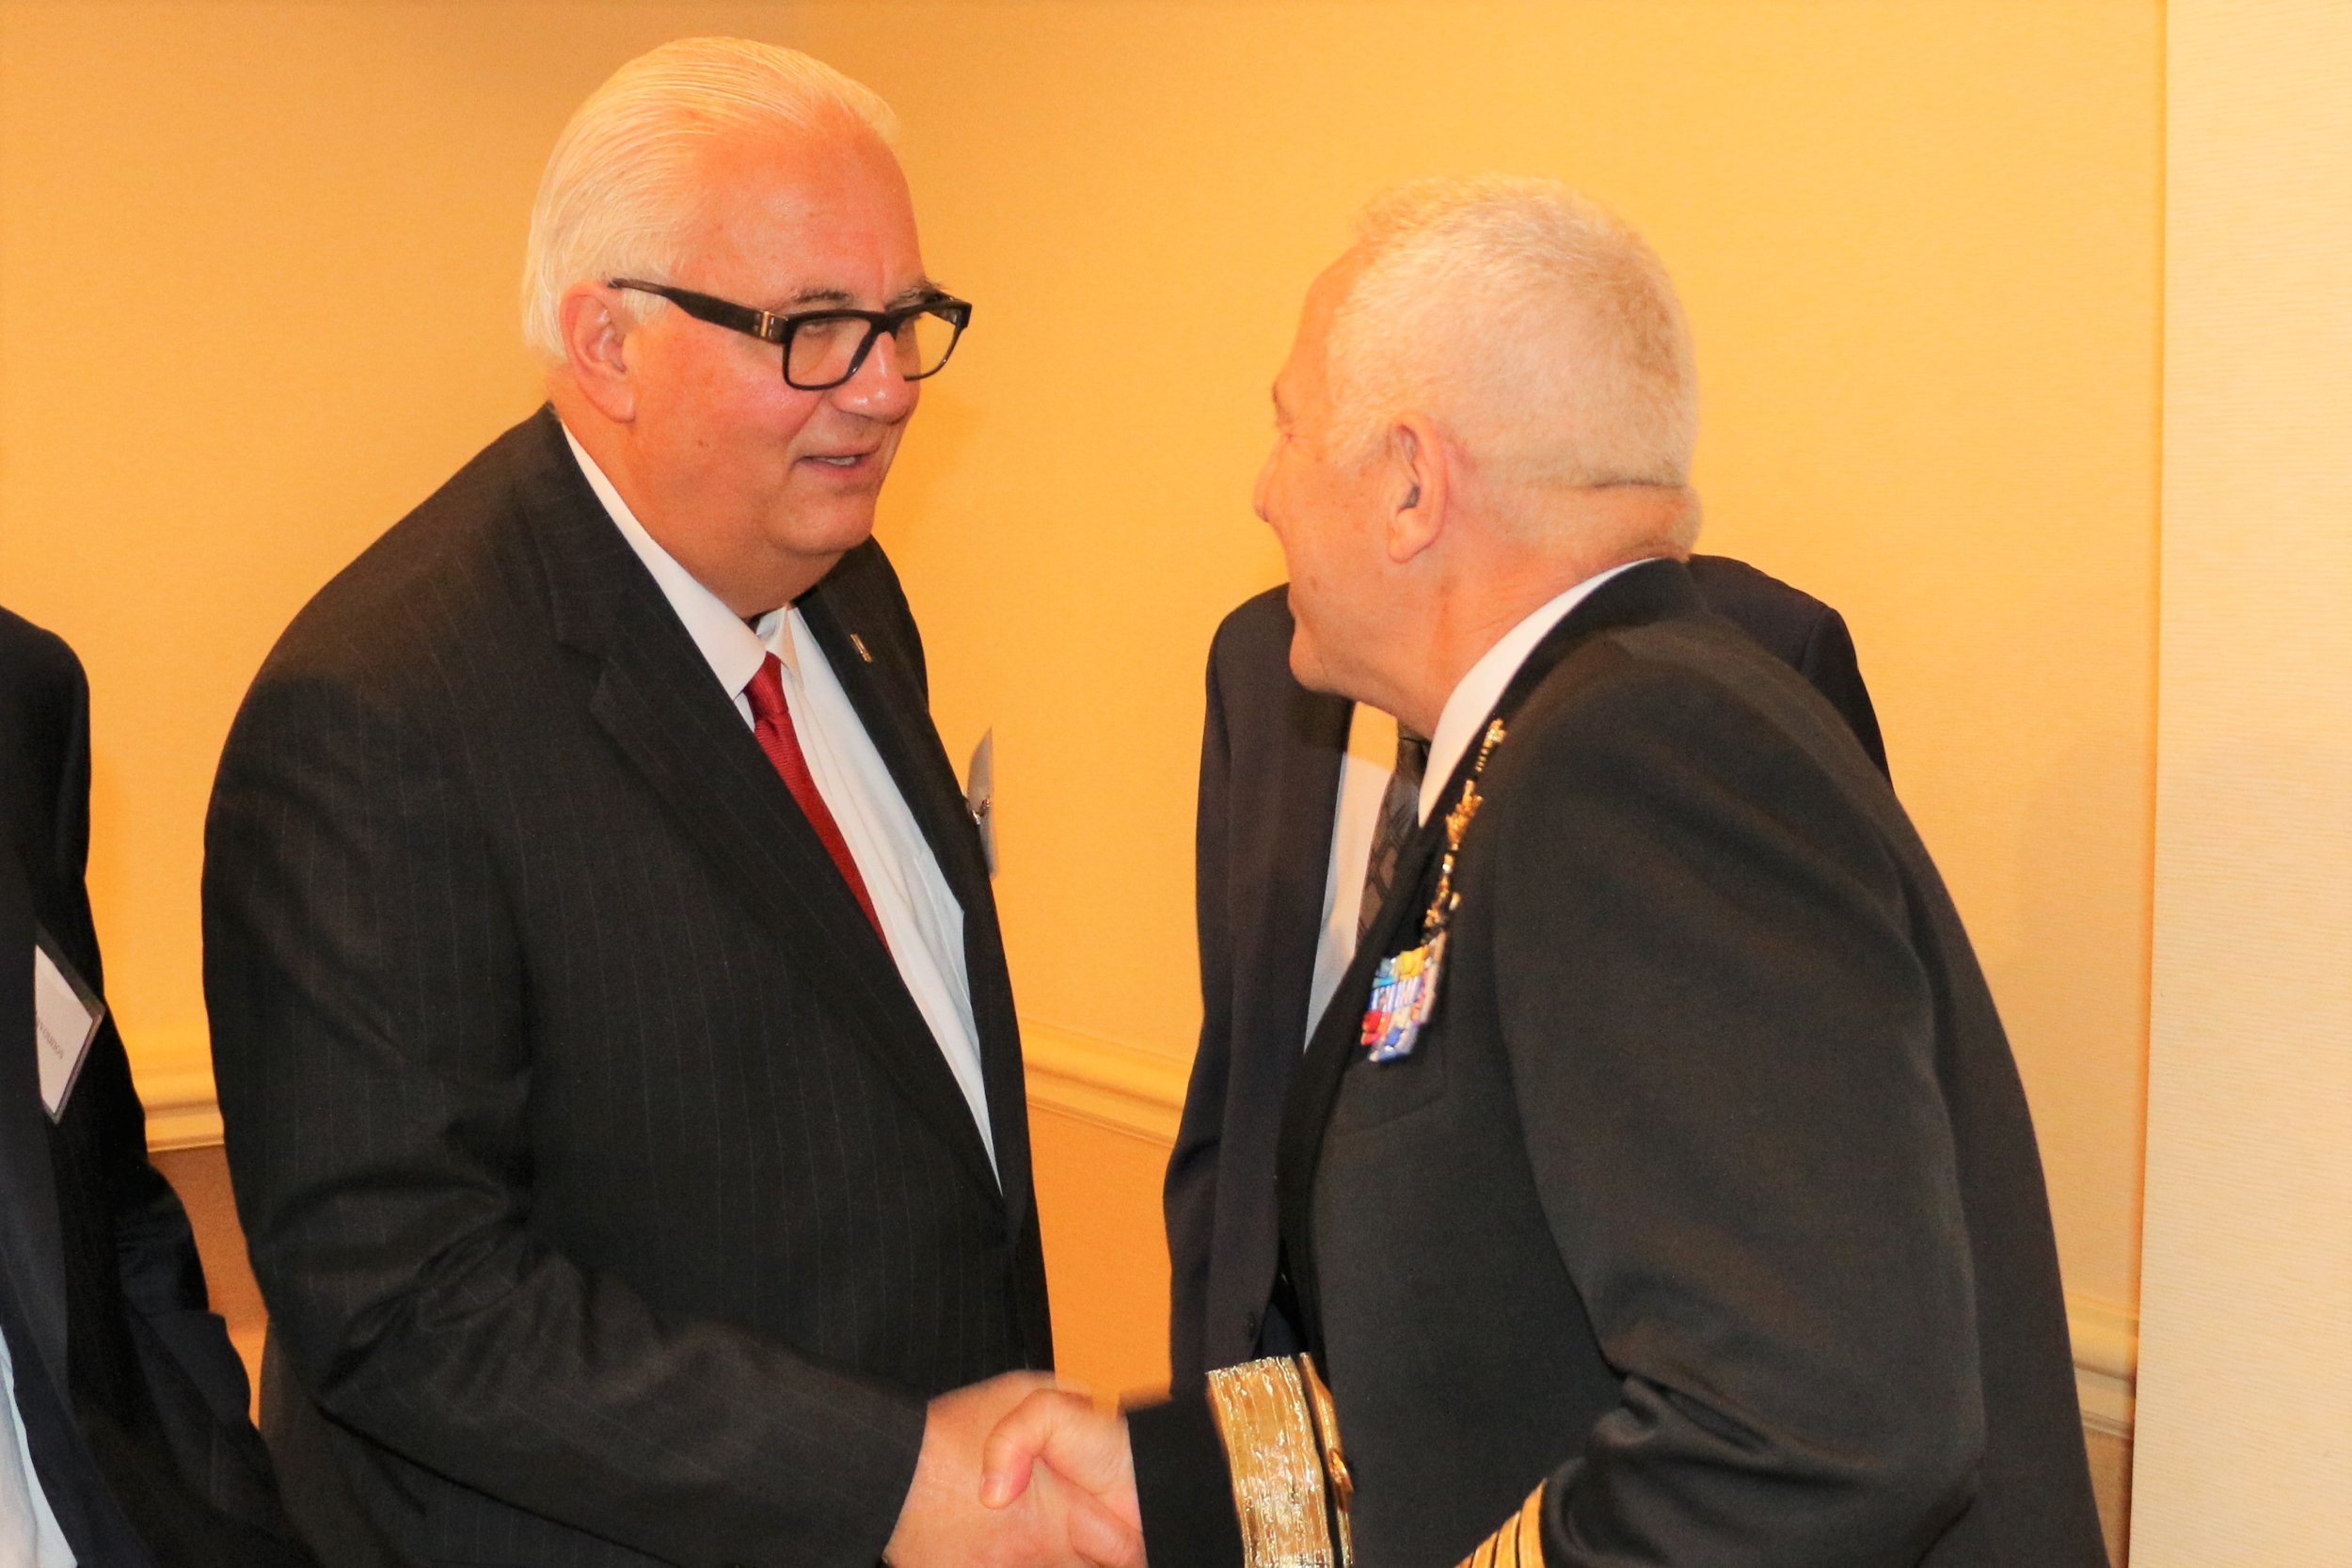 Former Acting Assistant Secretary of the Army for Acquisitions, Logistics, & Technology Dean Popps greeting Admiral Apostolakis.